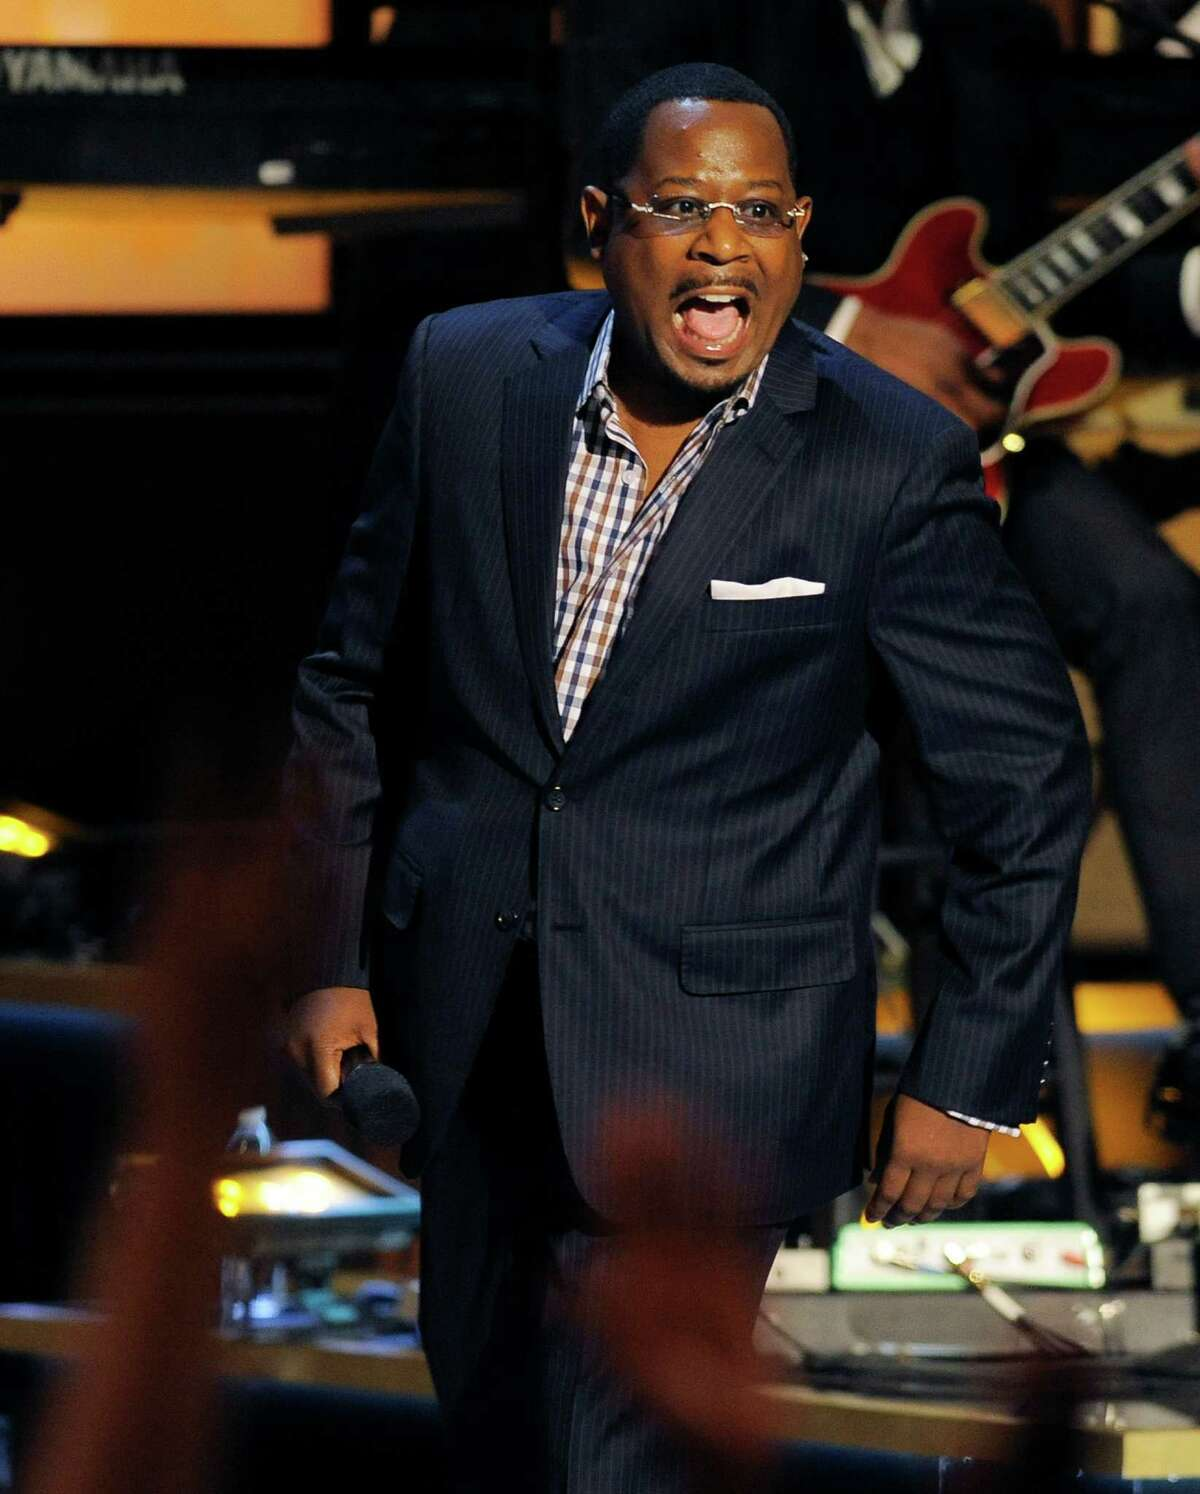 Comedian Martin Lawrence performs at Foxwoods in Mashantucket on Friday. Find out more.